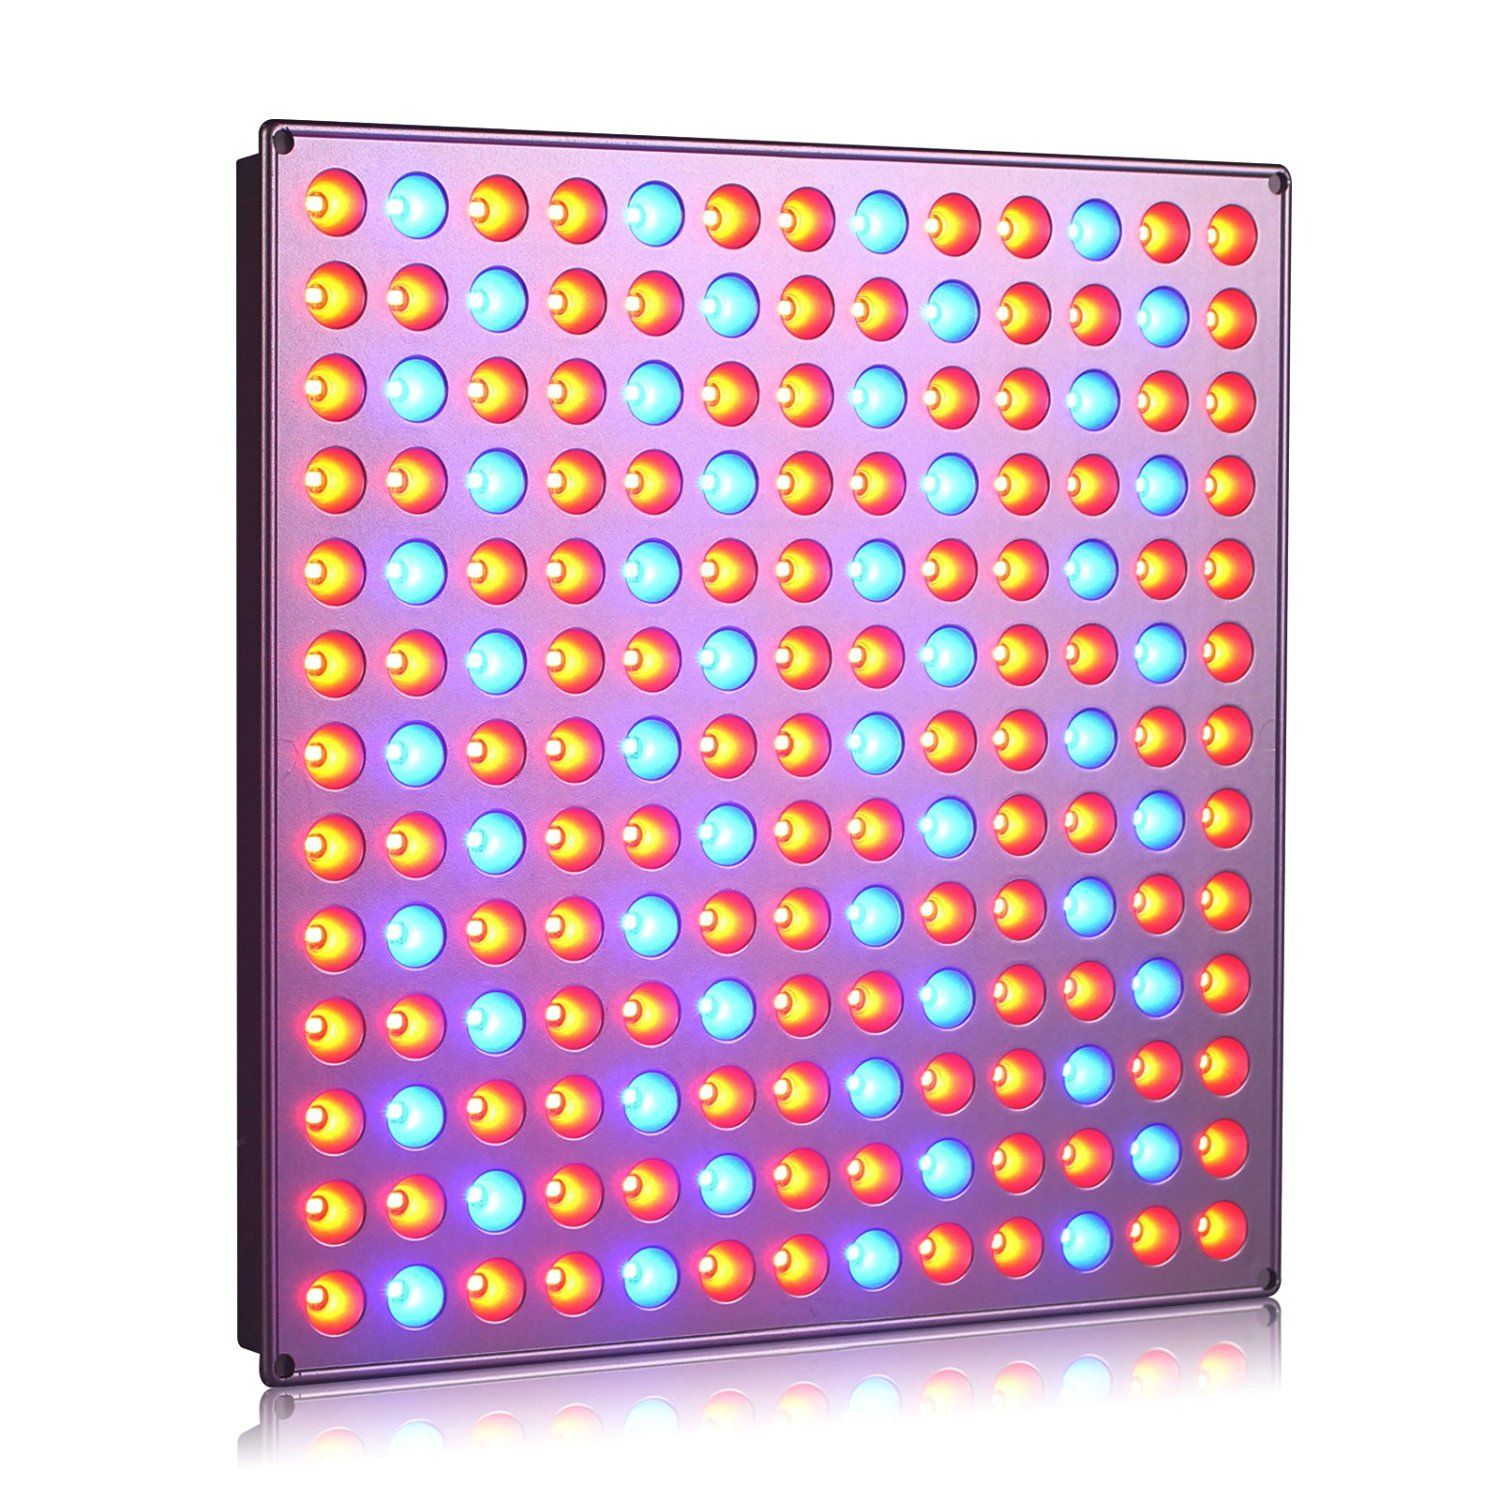 Pflanzenleuchte Led 9 9 Eur For Product Tester Roleadro Led Pflanzenlampe Led Grow